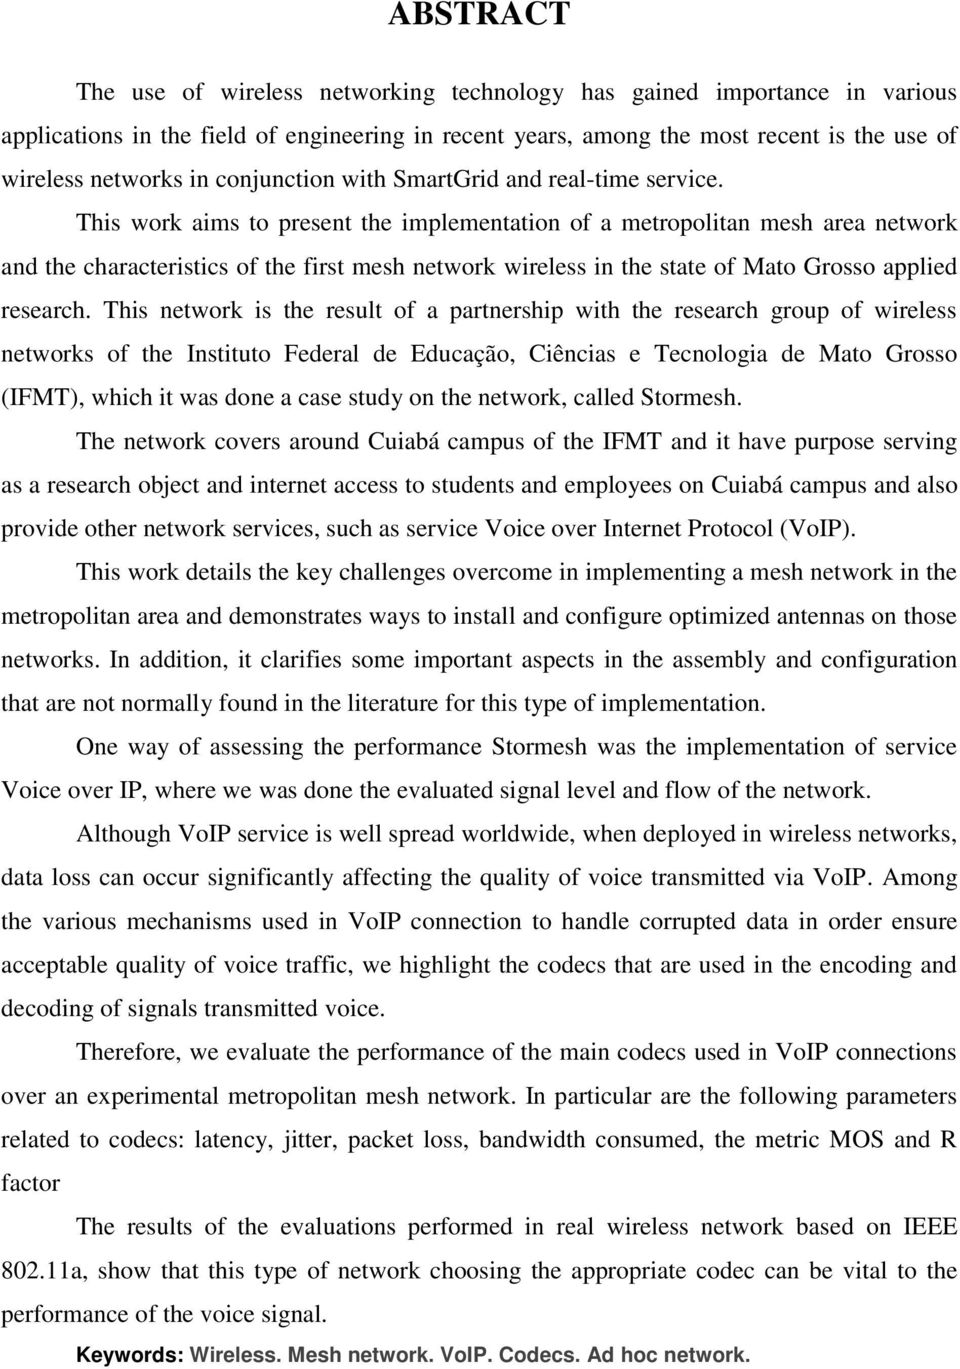 This work aims to present the implementation of a metropolitan mesh area network and the characteristics of the first mesh network wireless in the state of Mato Grosso applied research.